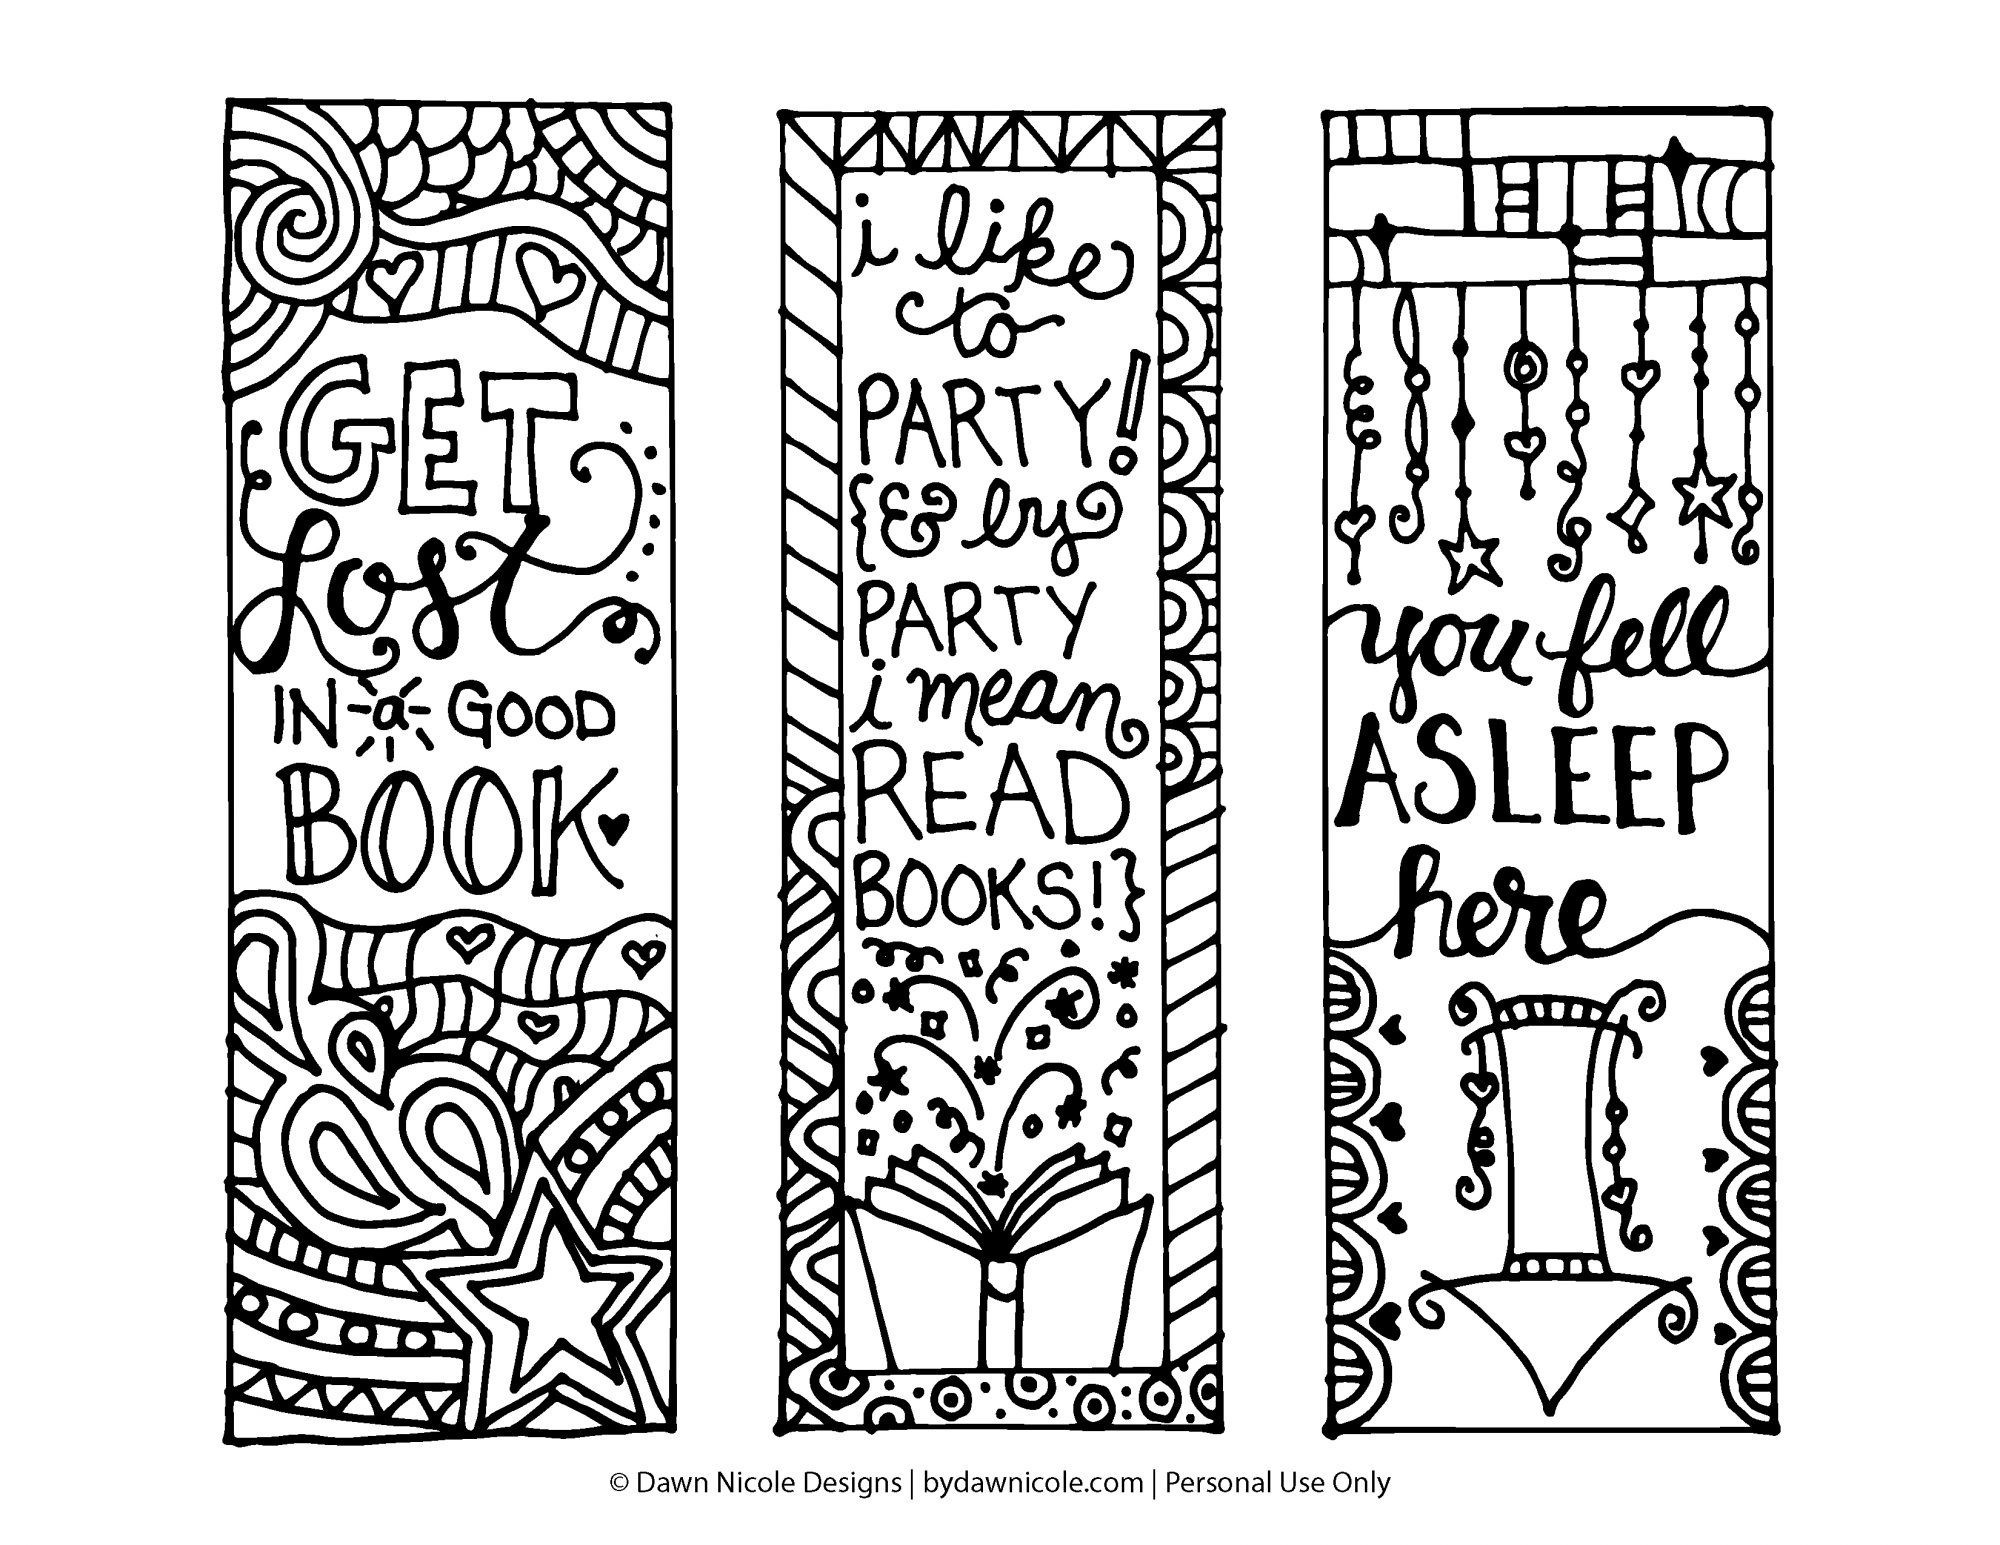 Cool Bookmarks To Print Black And White | World Of Example regarding Cute Bookmarks To Print Black And White 27250